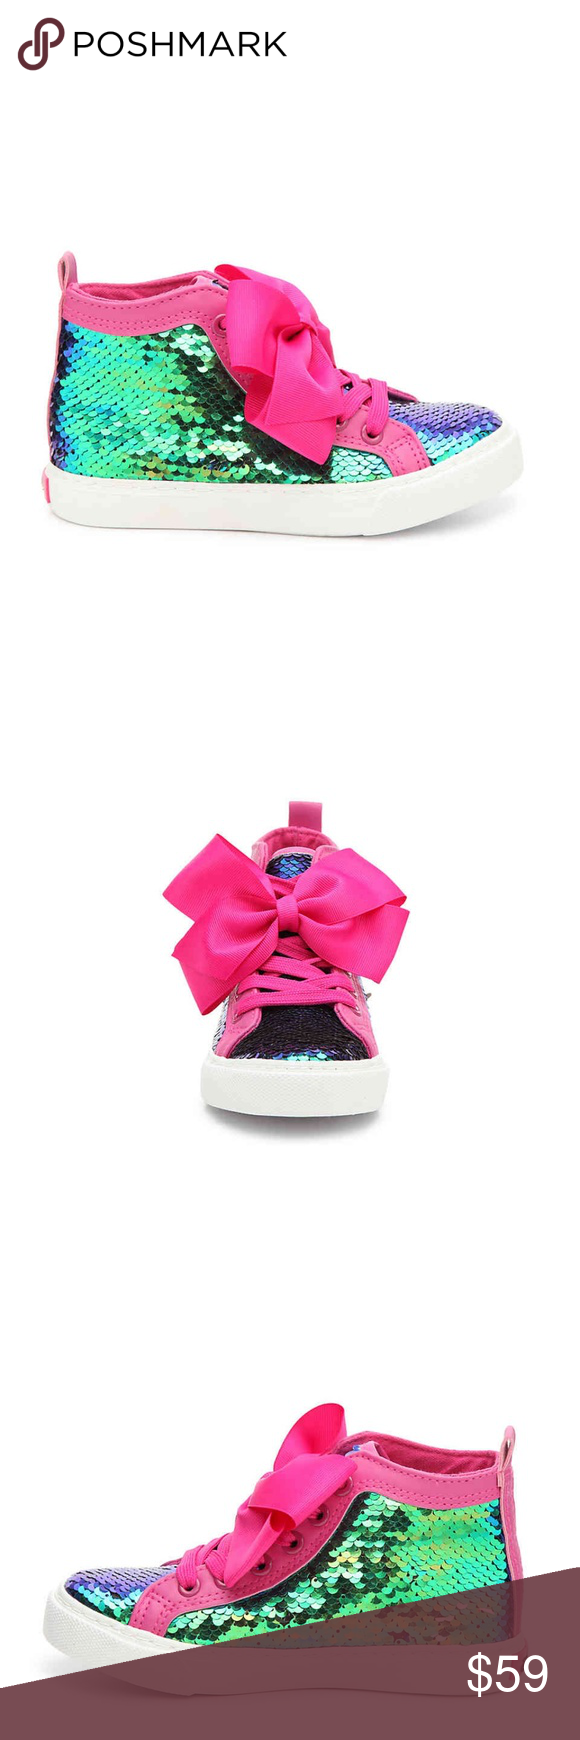 7fb13613c90 NIB Jojo Siwa Mermaid High Top Sneakers Girls Get her a glitzy pair of  sneakers that all her friends will want to copycat! The Jojo Siwa high-tops  from ...